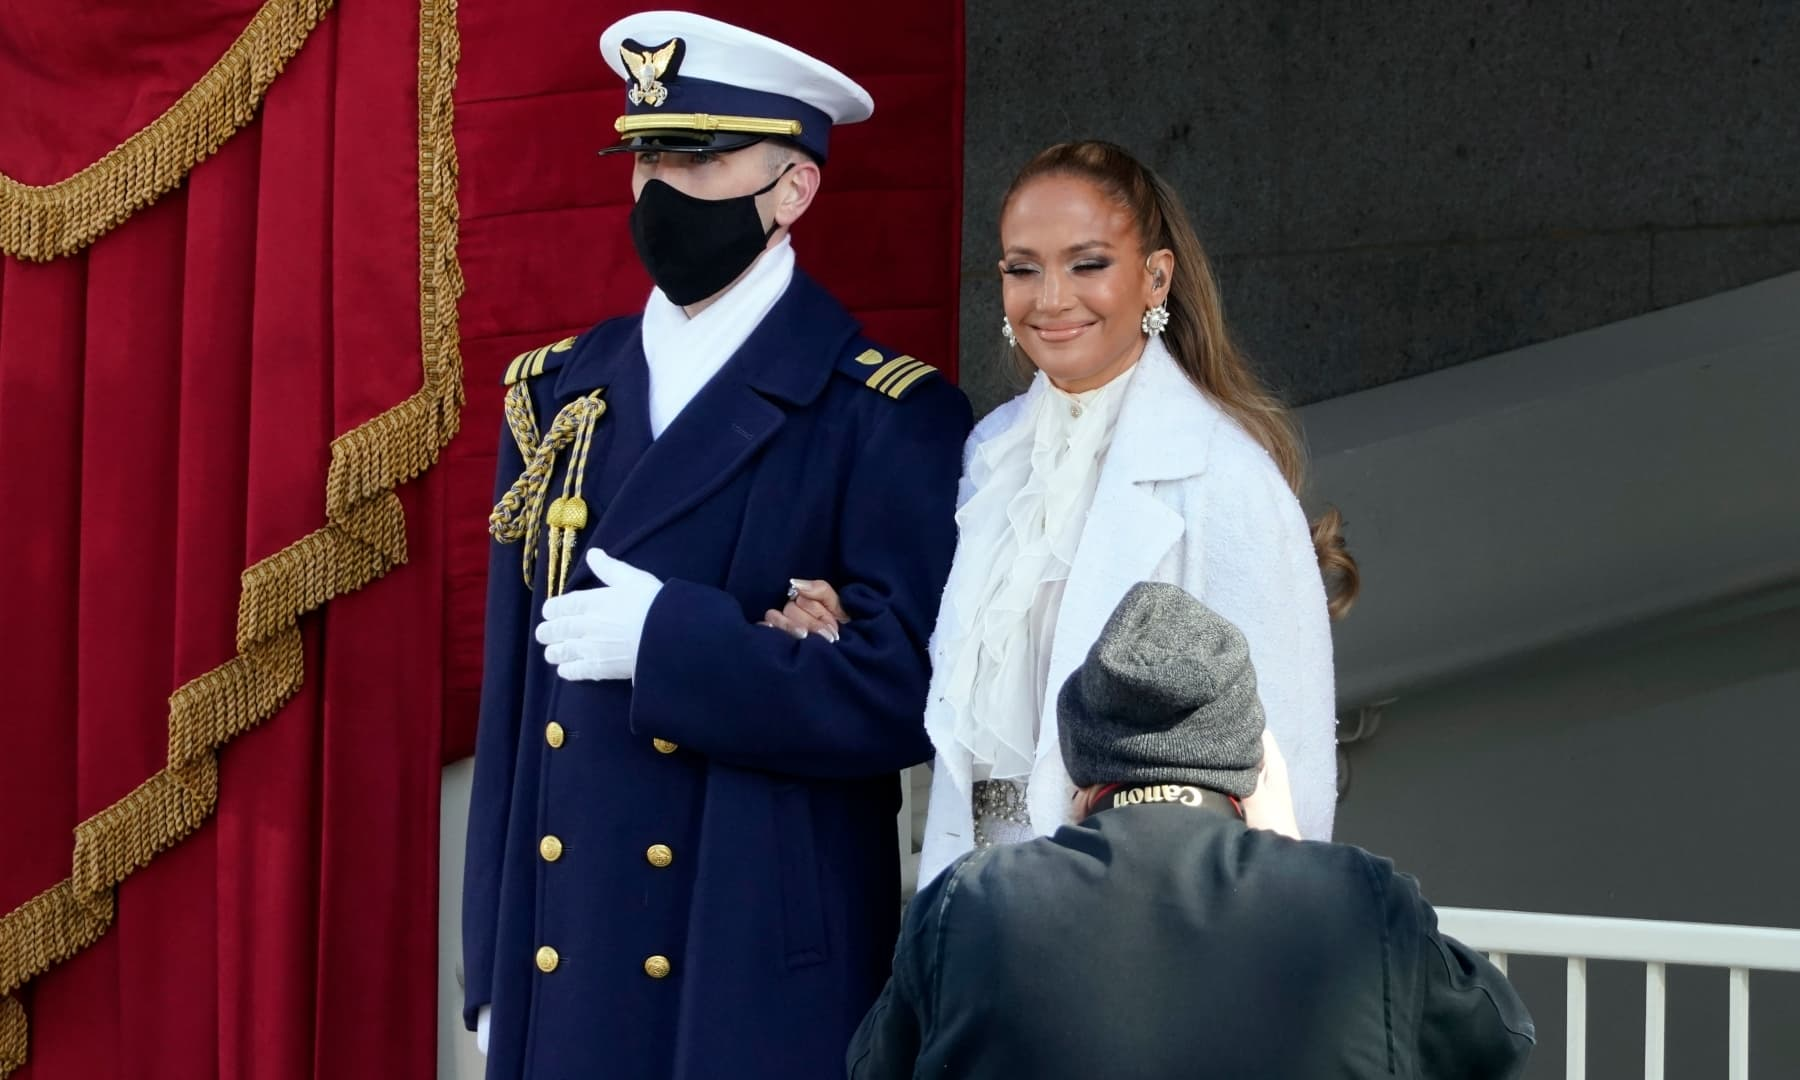 Jennifer Lopez arrives to perform during the 59th Presidential Inauguration at the US Capitol in Washington, Wednesday. — AP